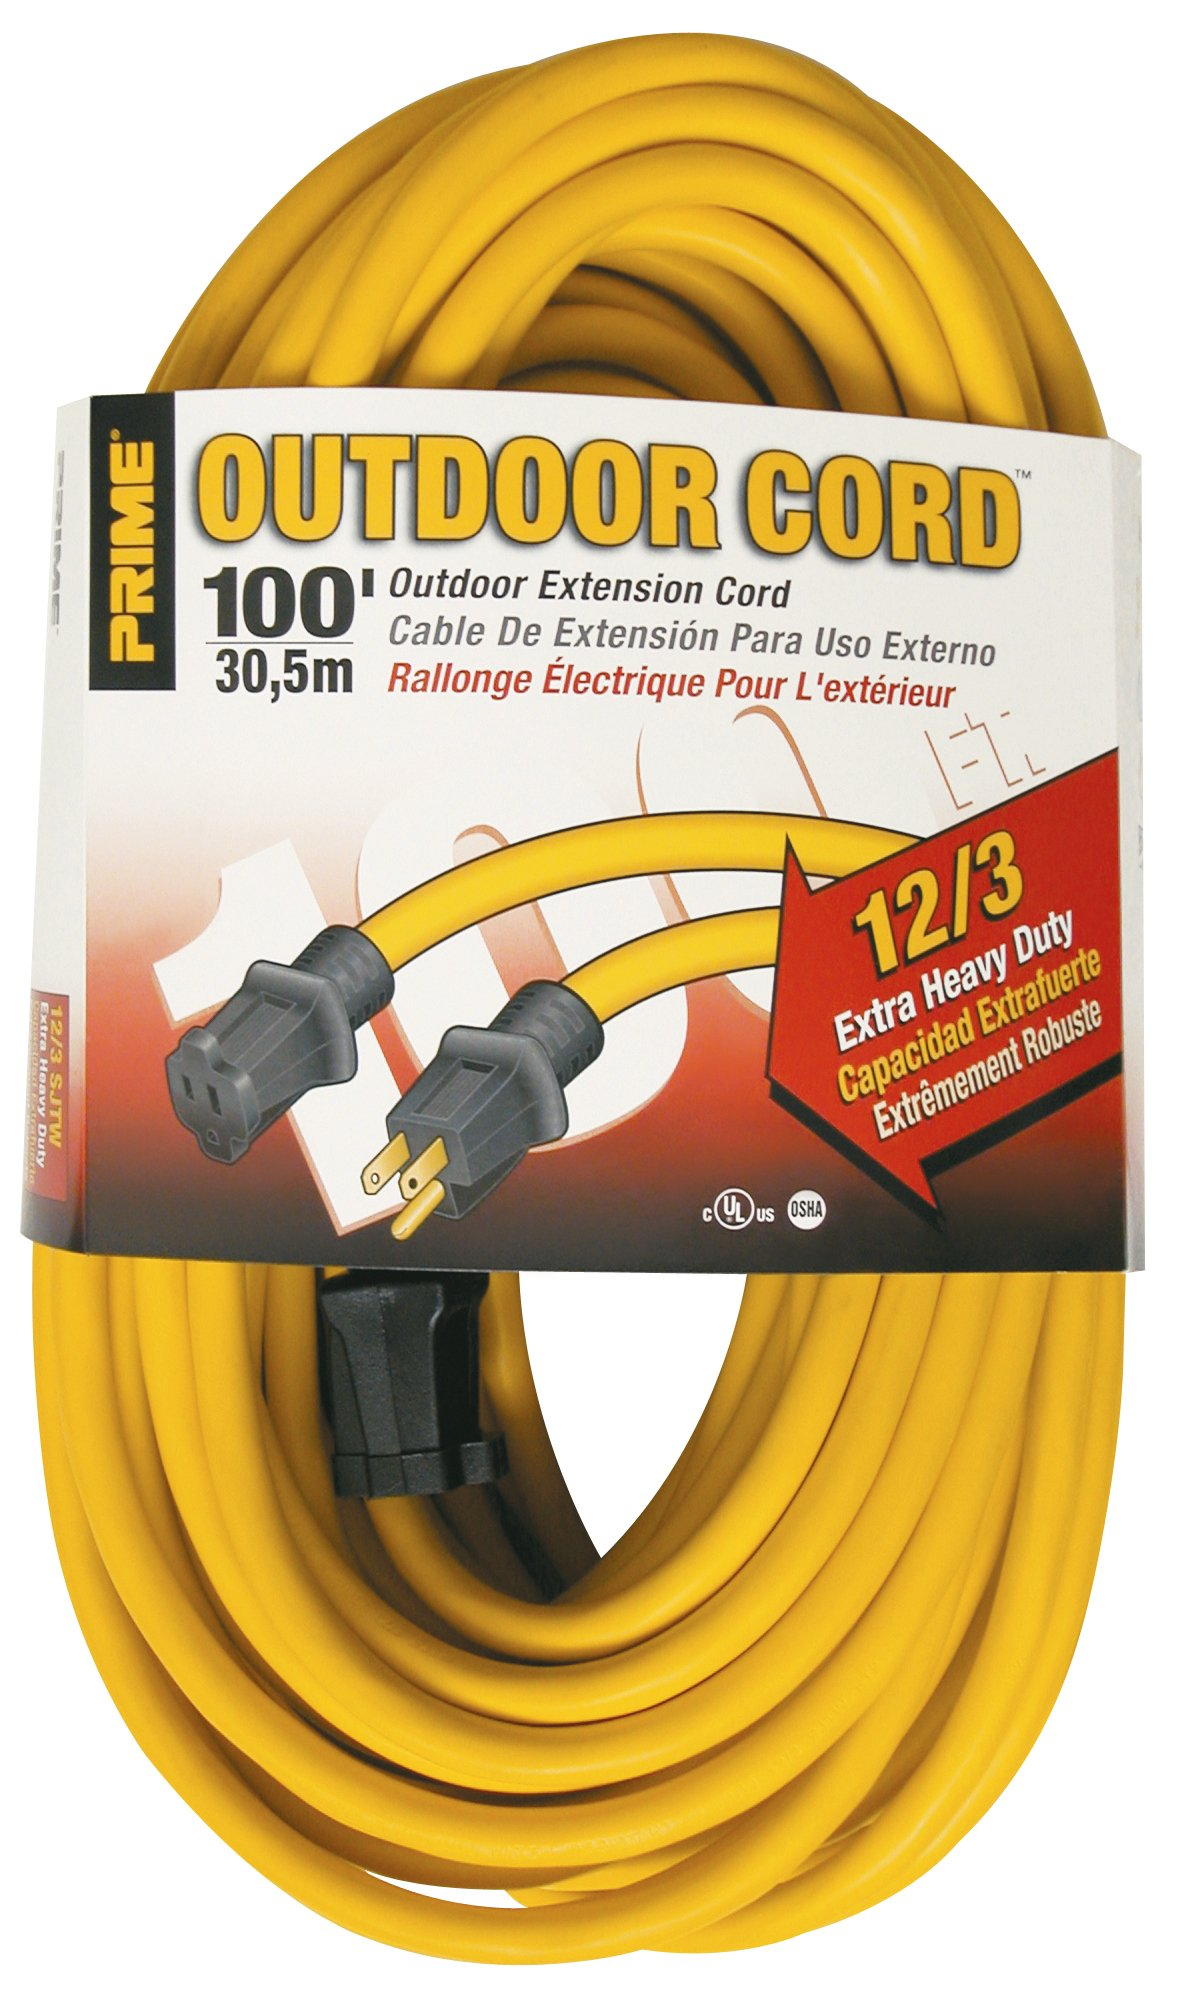 Prime Wire & Cable EC500835 100-Foot 12/3 SJTW Jobsite Outdoor Extension Cord, Yellow